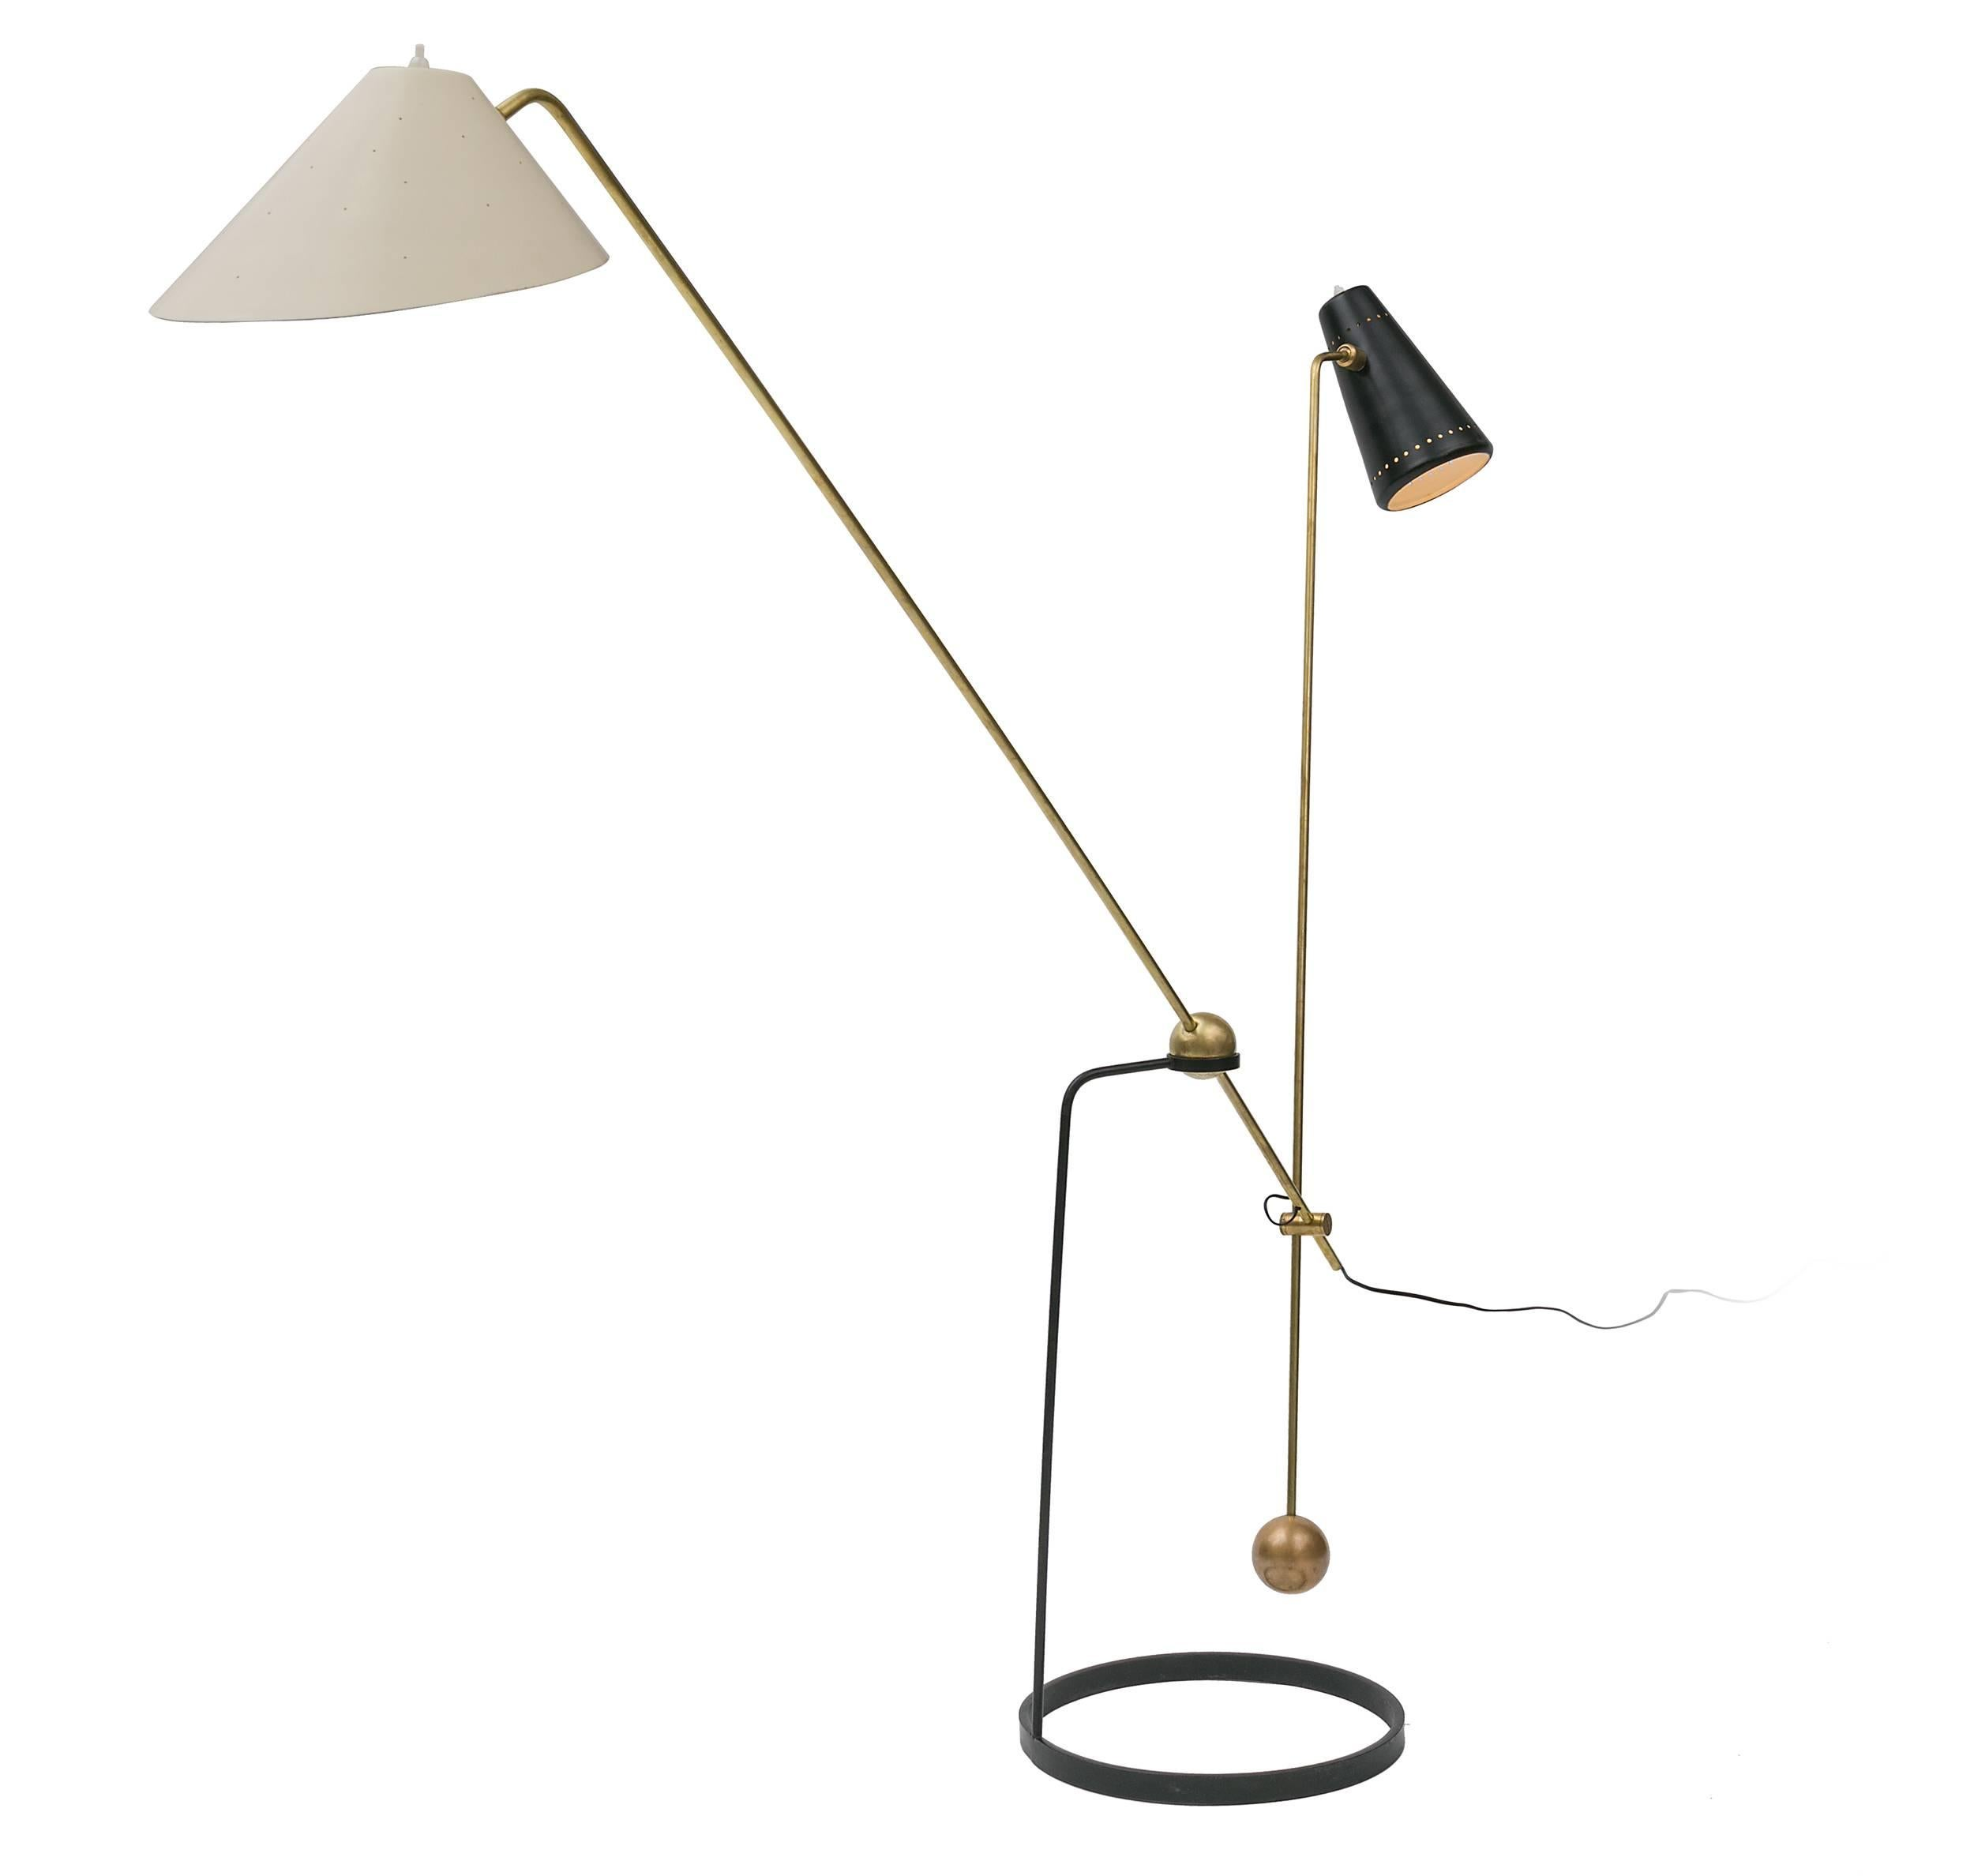 Pierre Guariche Equalibrium Floor Lamp For Disderot, France, 1950S At